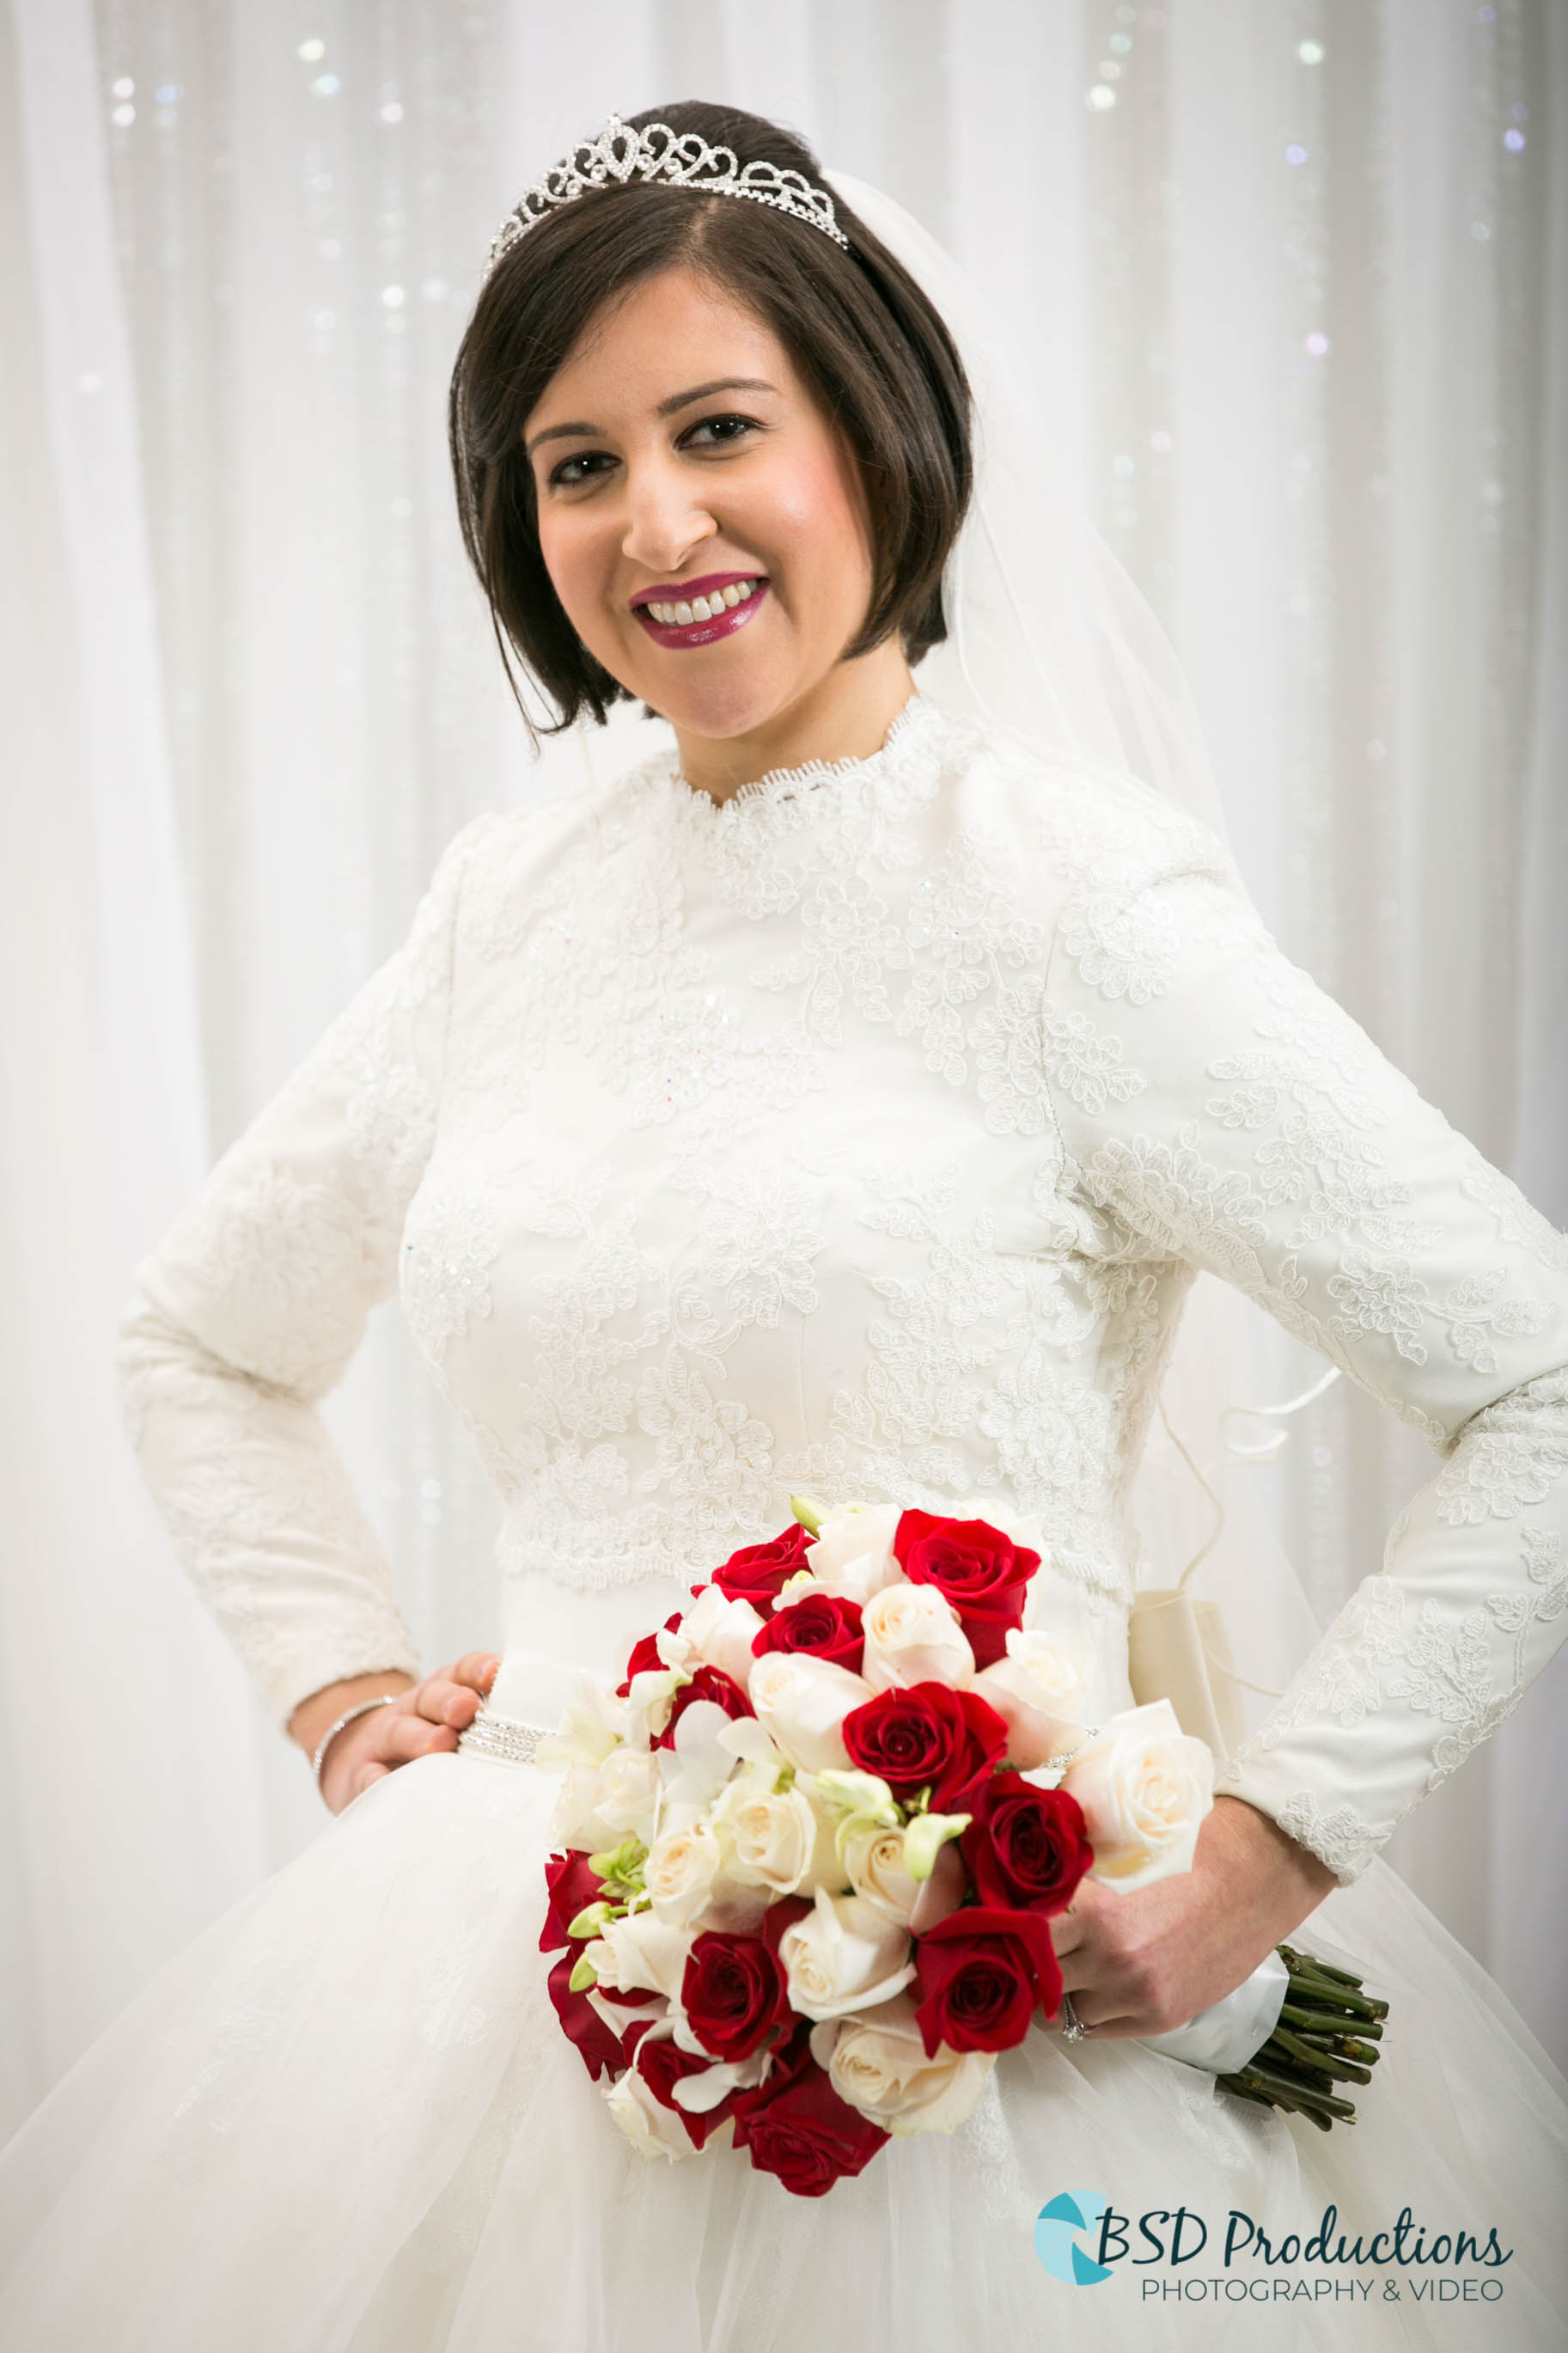 UH5A2397 Wedding – BSD Productions Photography